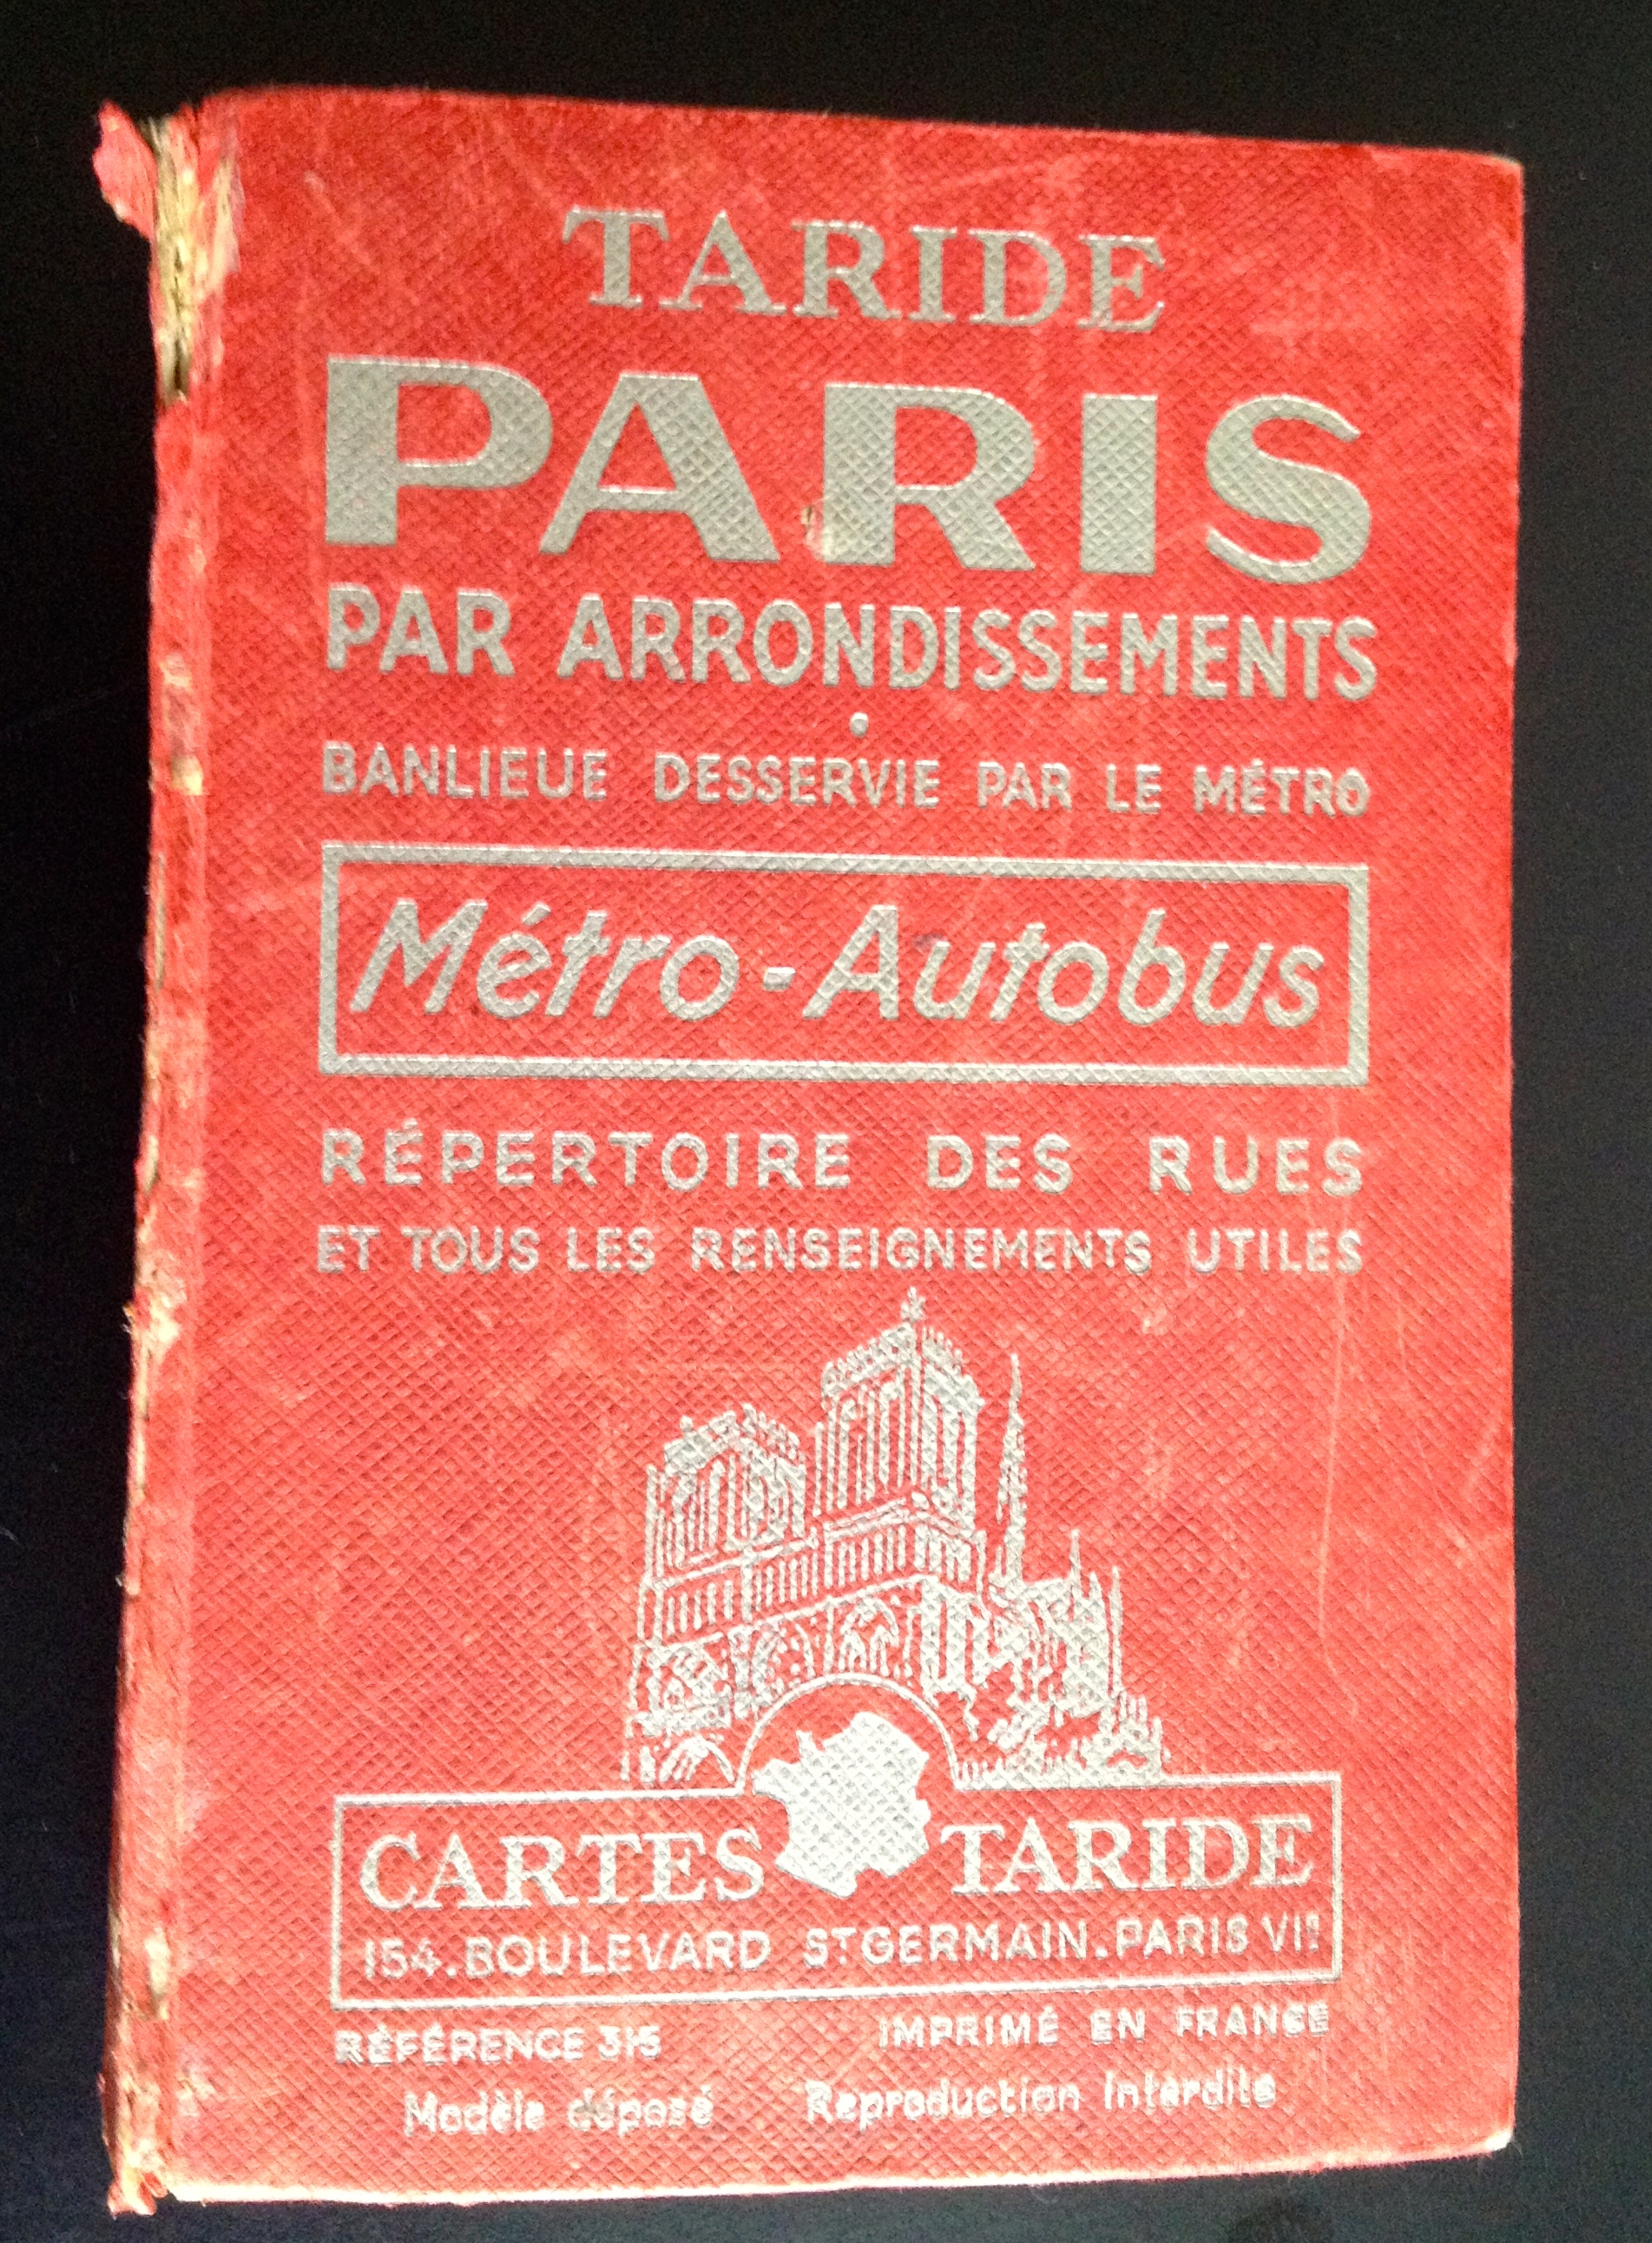 Plan de Paris 1966